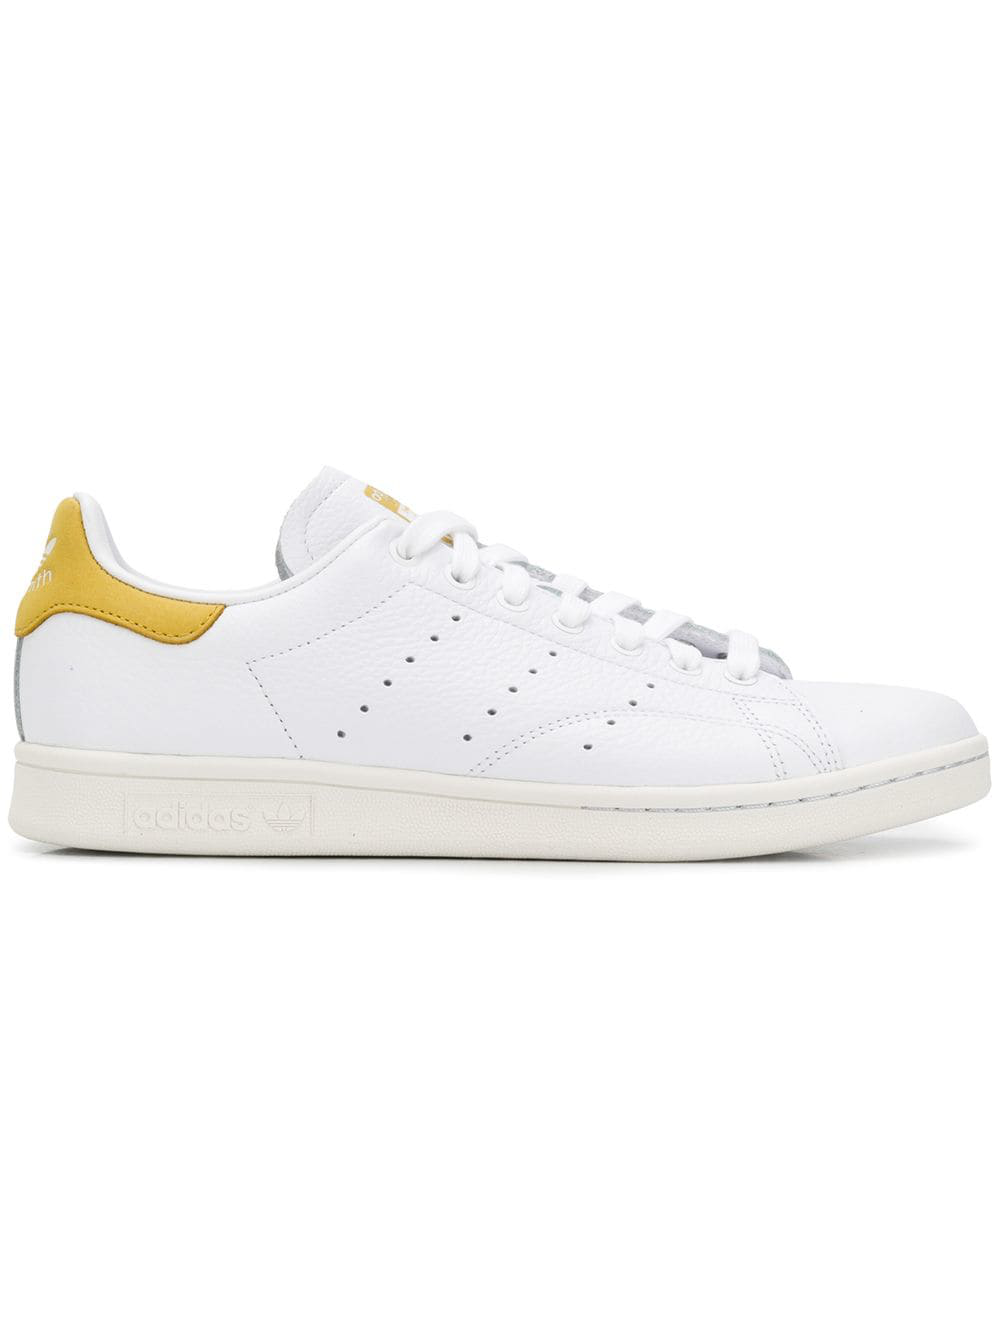 check out f719f 4d283 Adidas Originals Adidas Stan Smith Sneakers - White. Farfetch